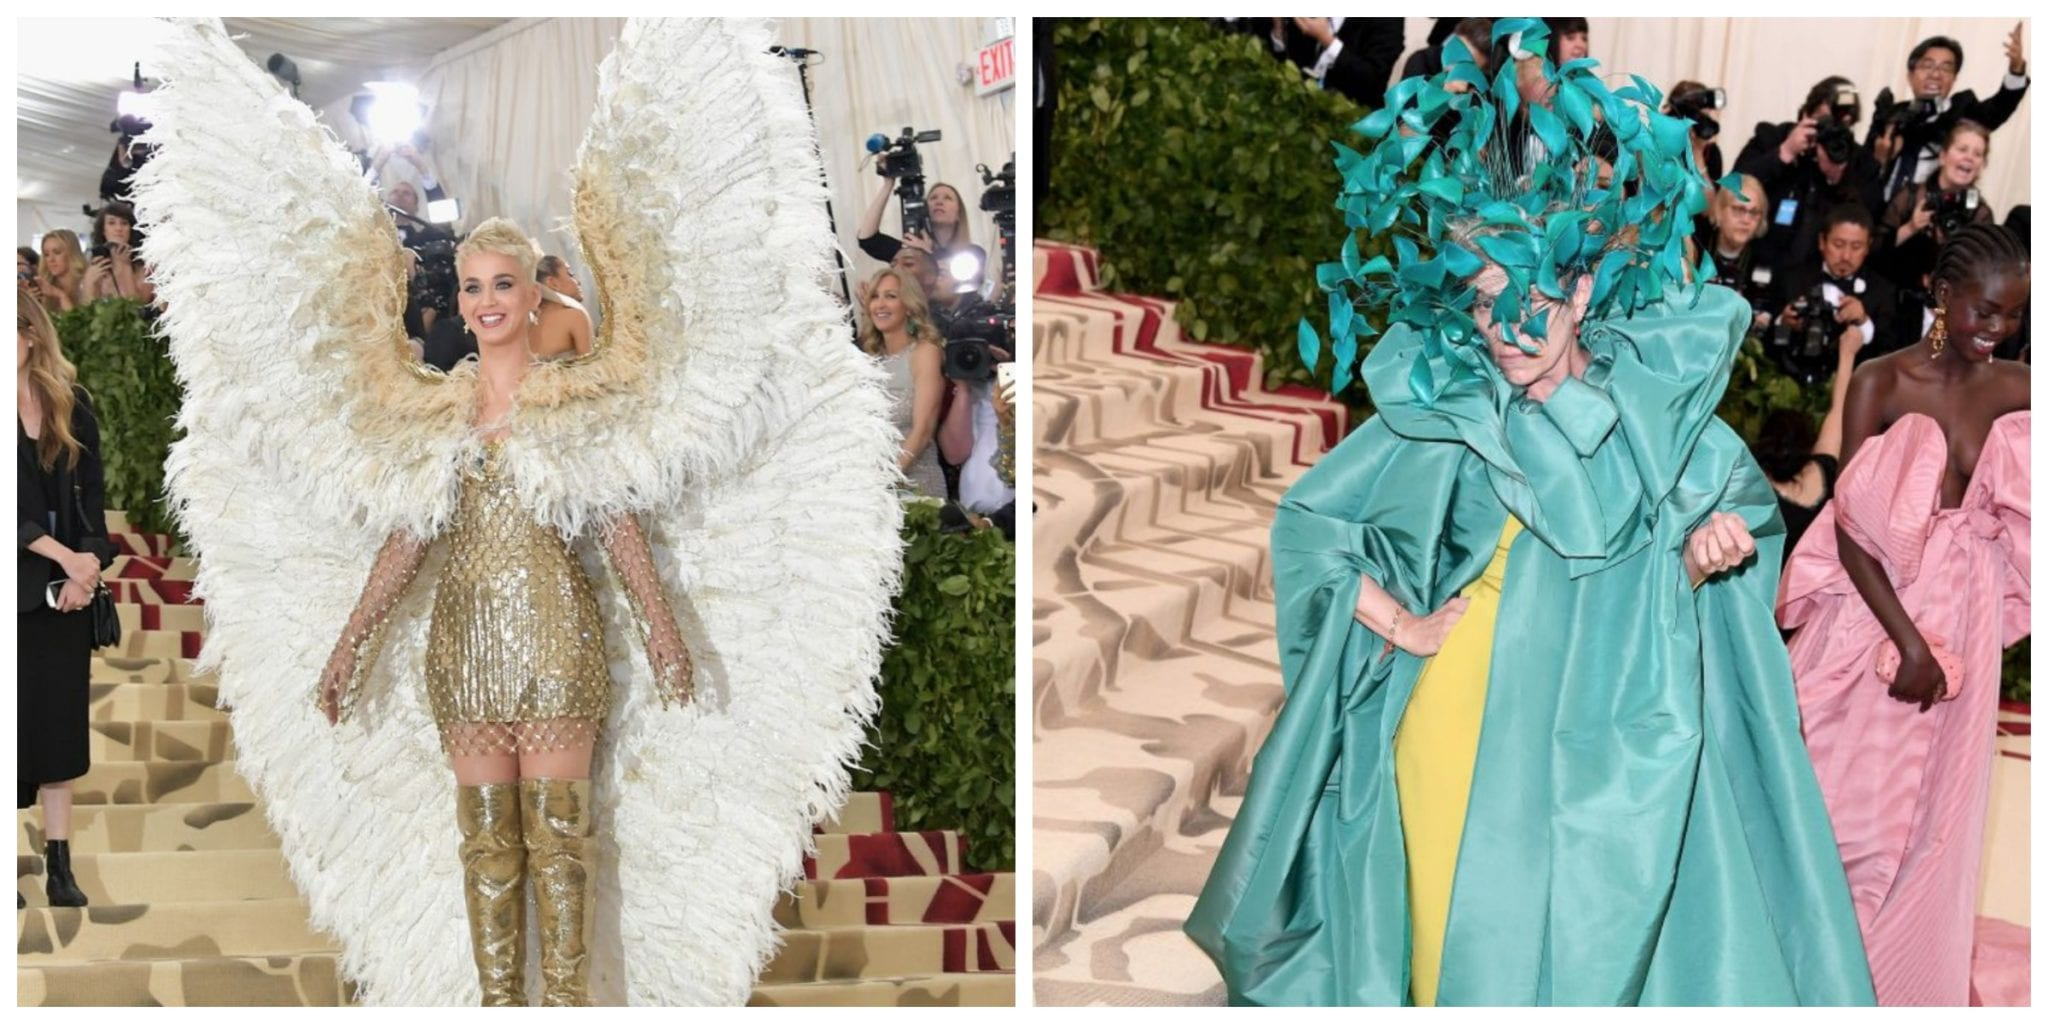 met gala, met gala dresses, met gala looks, met gala favorites